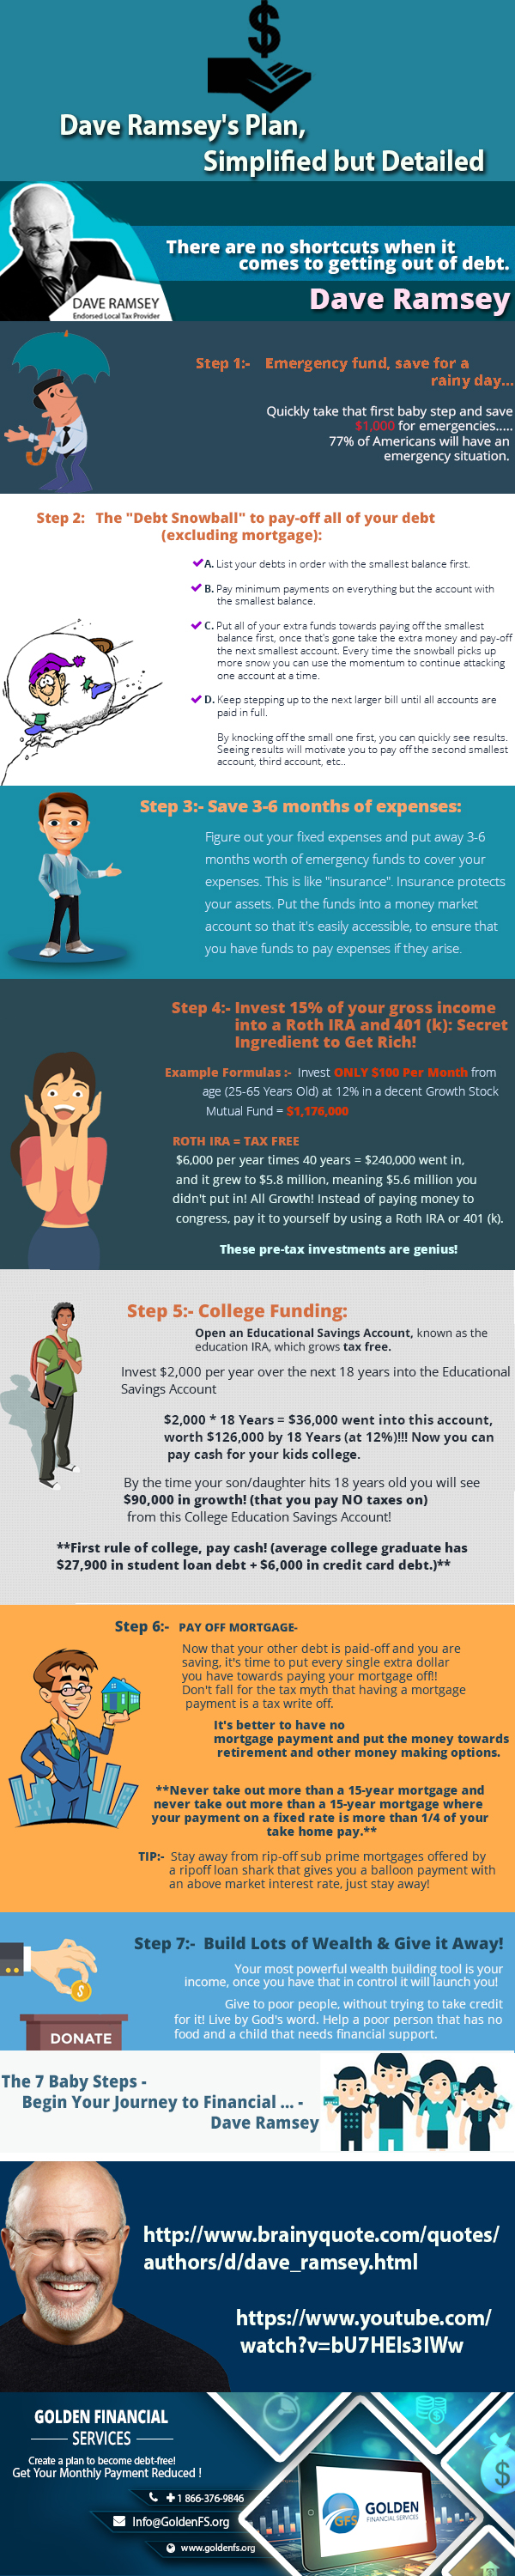 7 Baby Steps to Long-Term Wealth: Dave Ramsey's Plan - Infographic